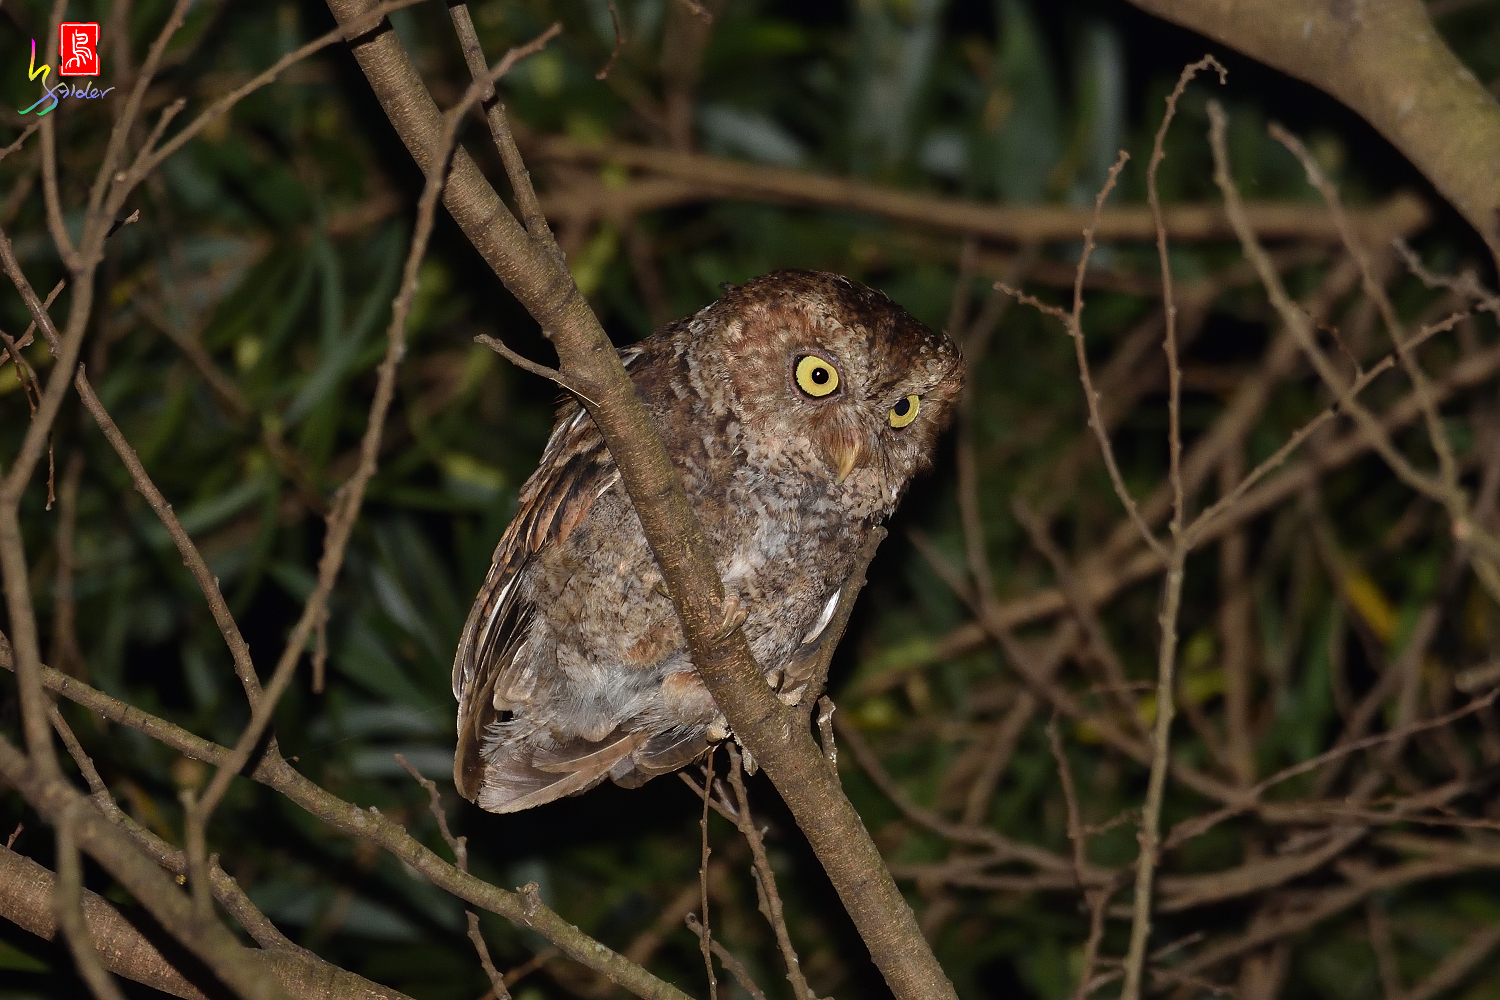 Moutain_Scops_Owl_3541